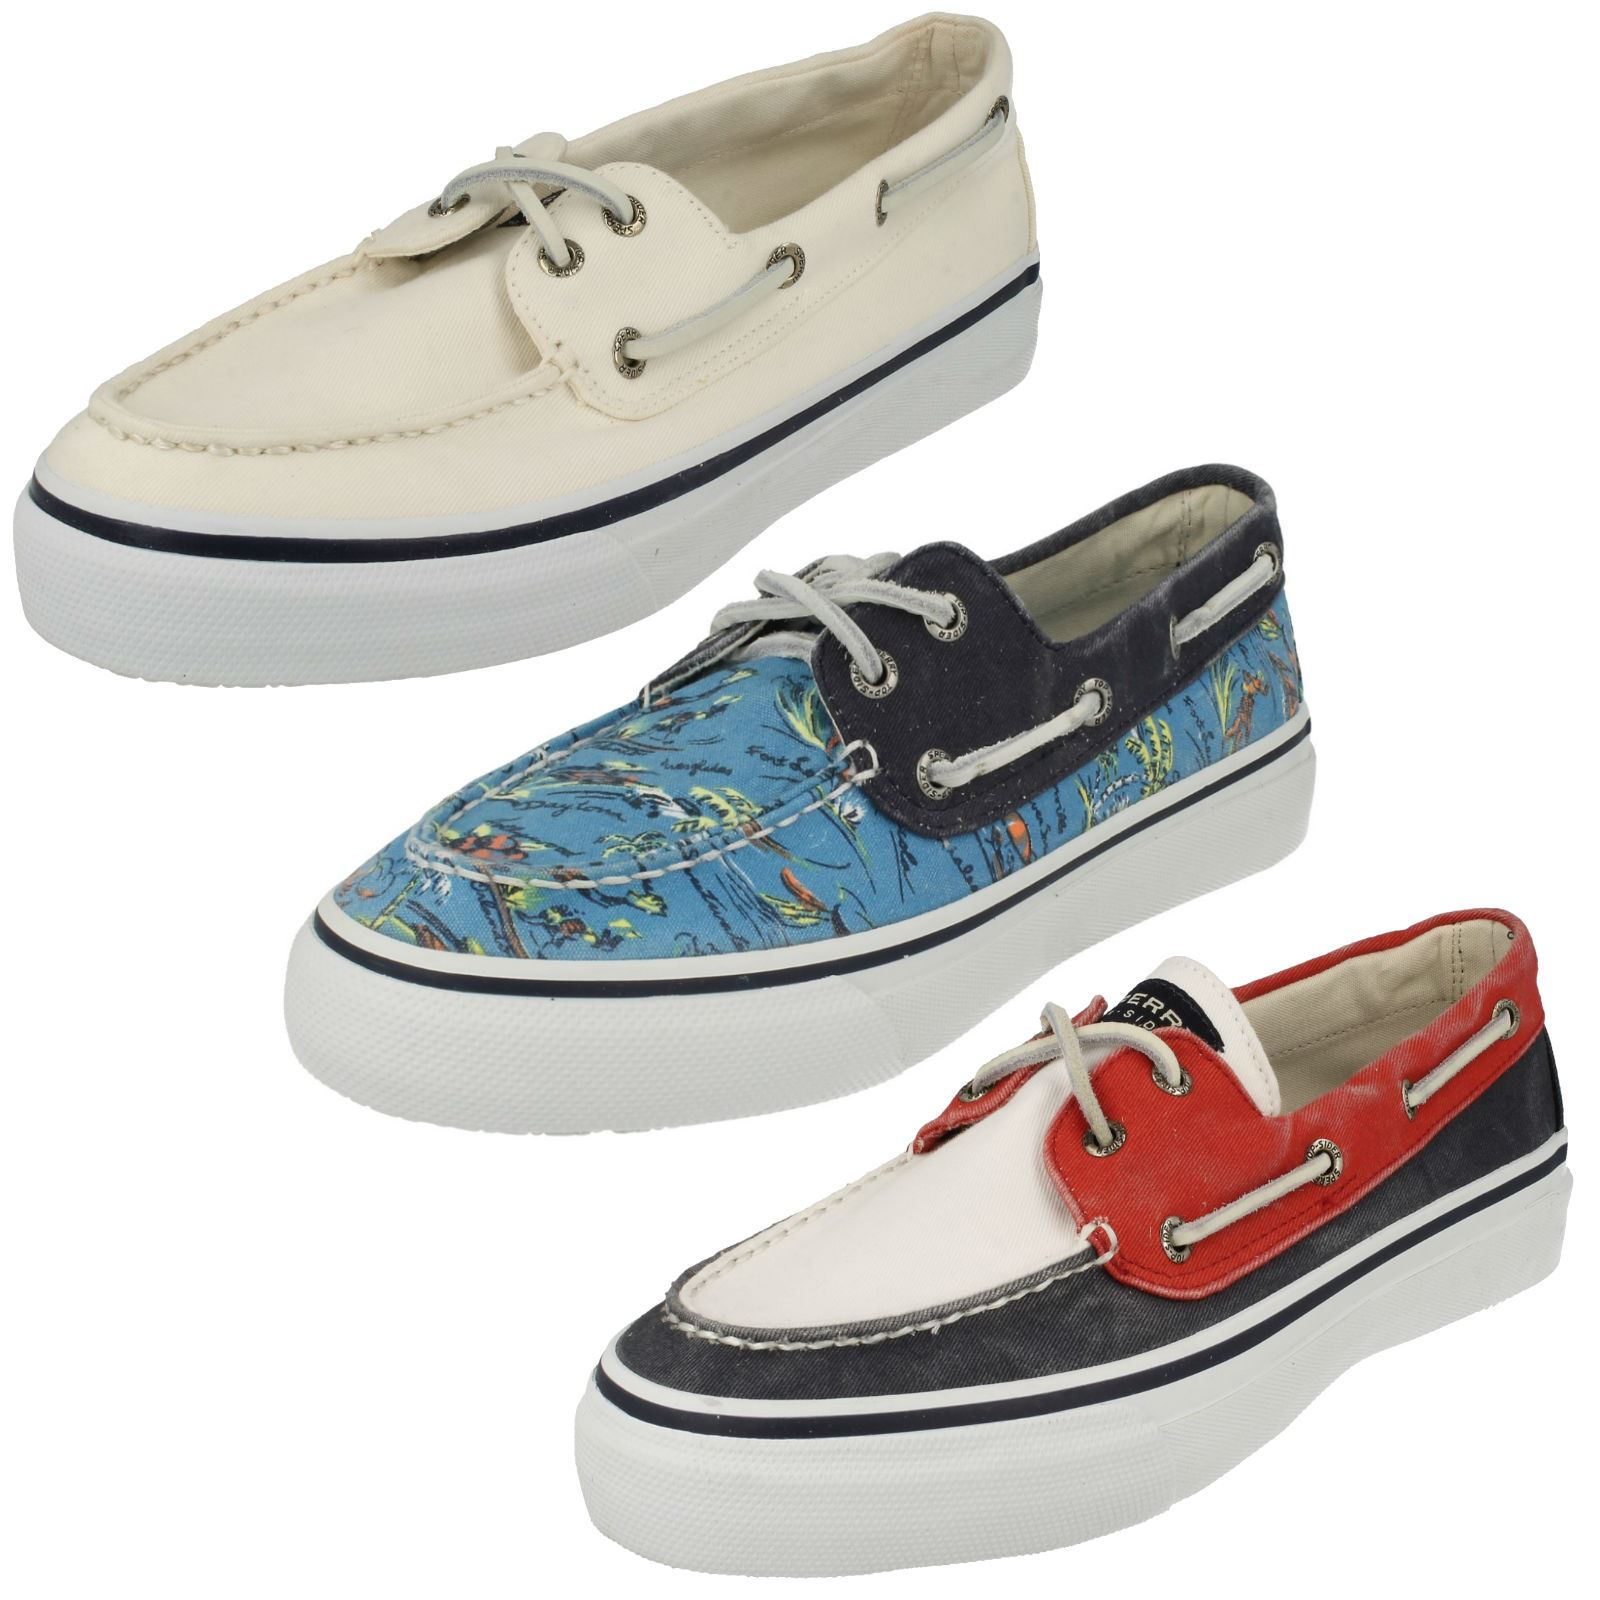 Mens Sperry Top Sider Pumps 'Bahama 2